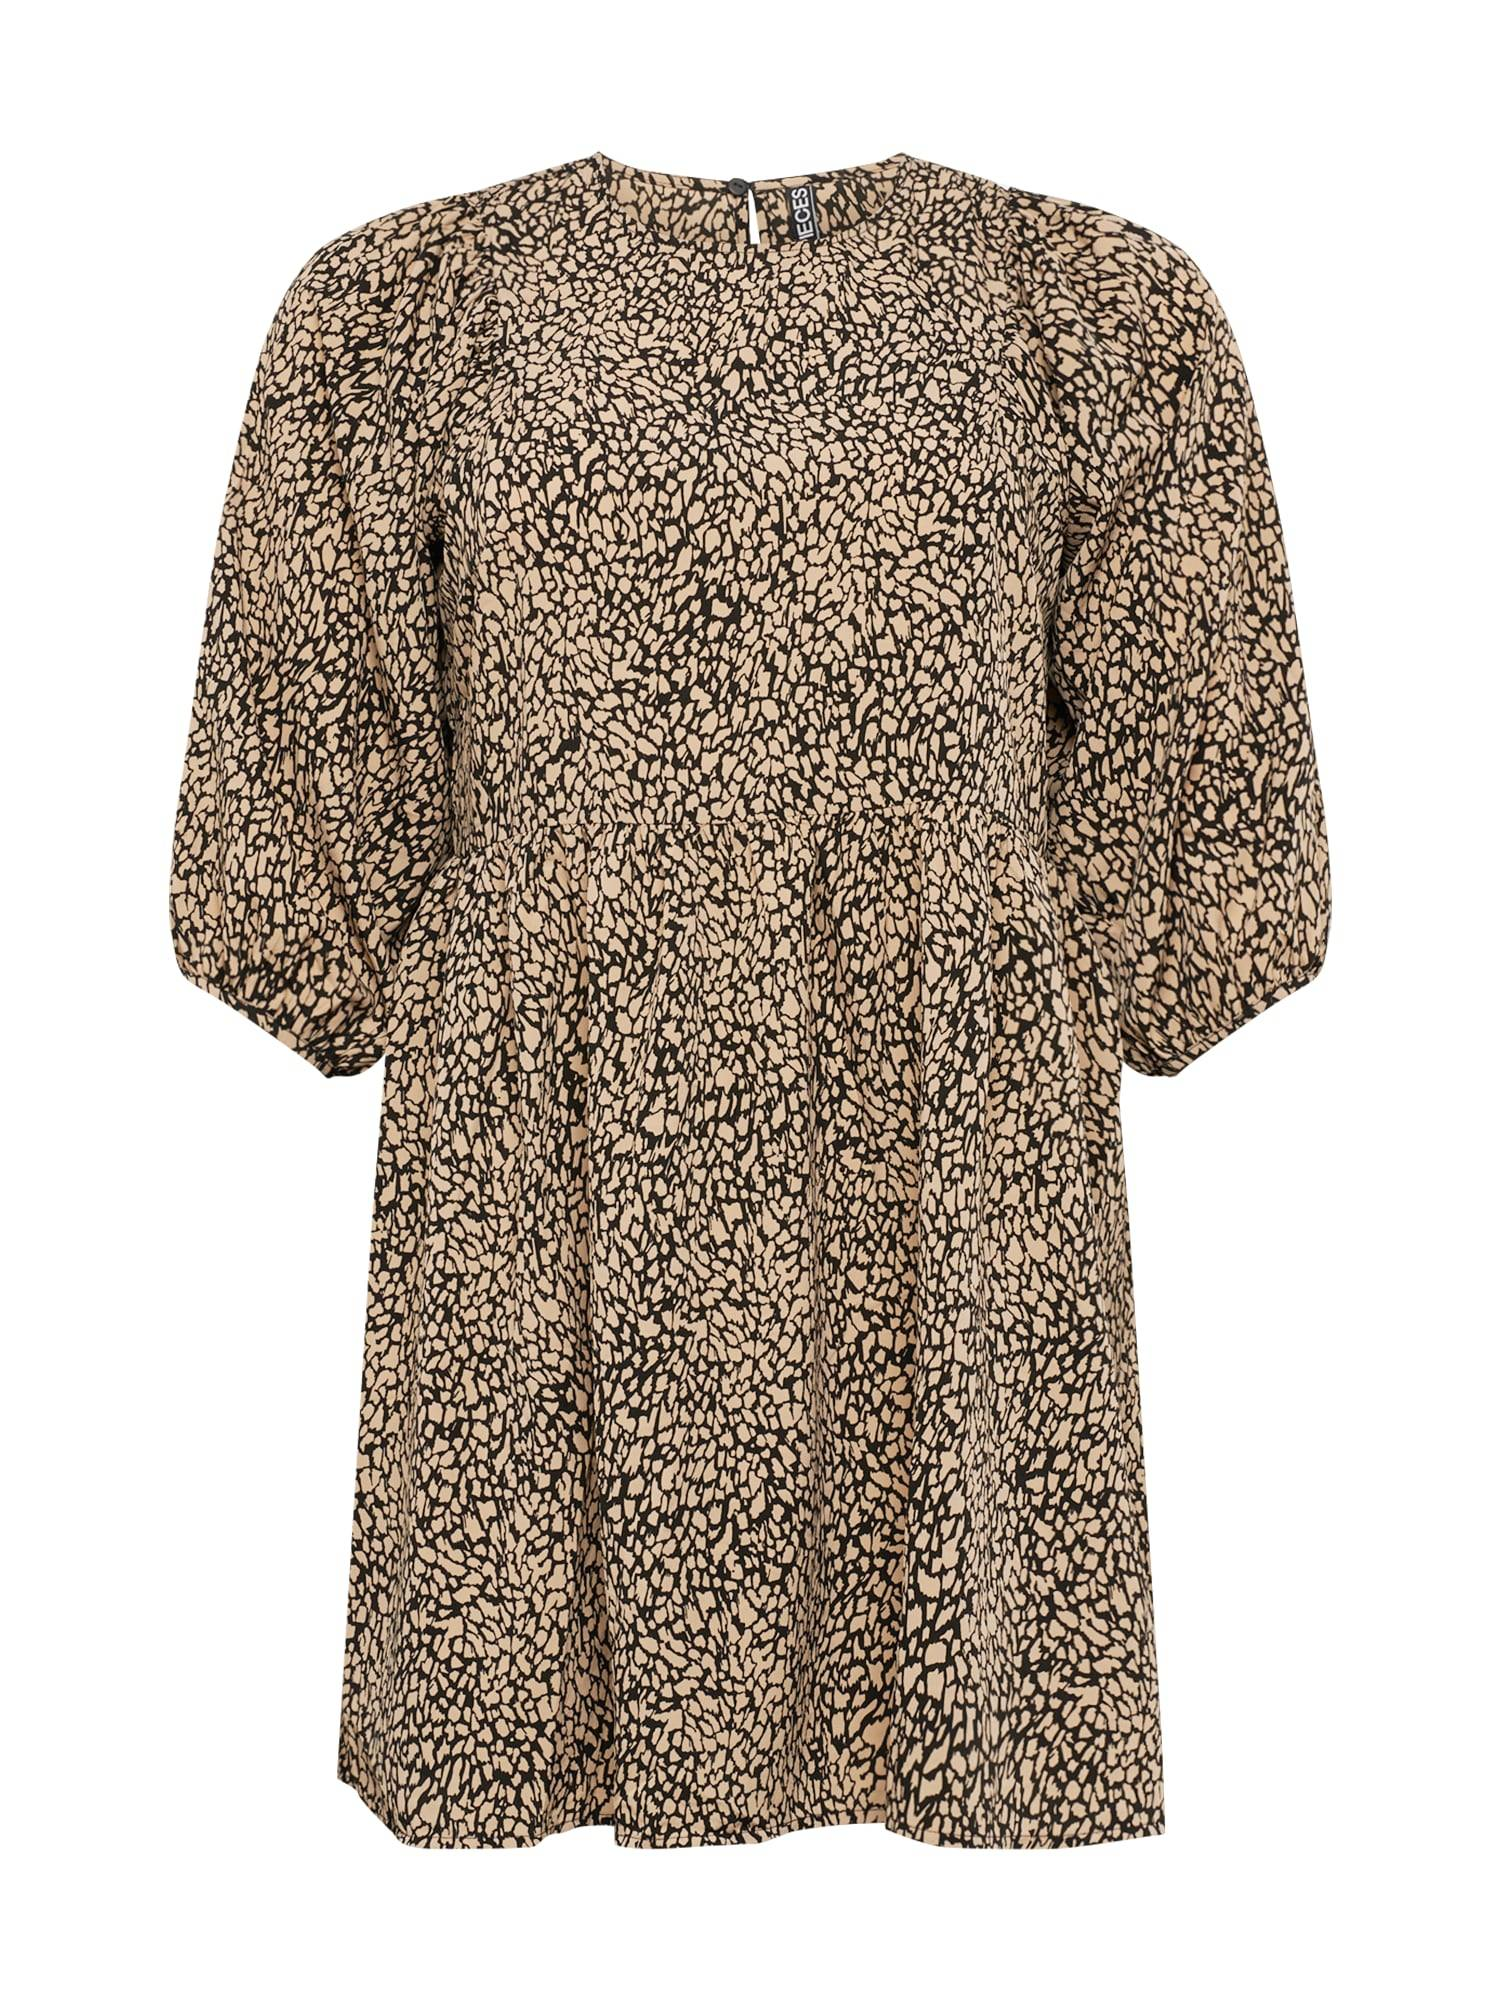 PIECES (Curve) Robe 'GILBERTA'  - Beige - Taille: 44 - female